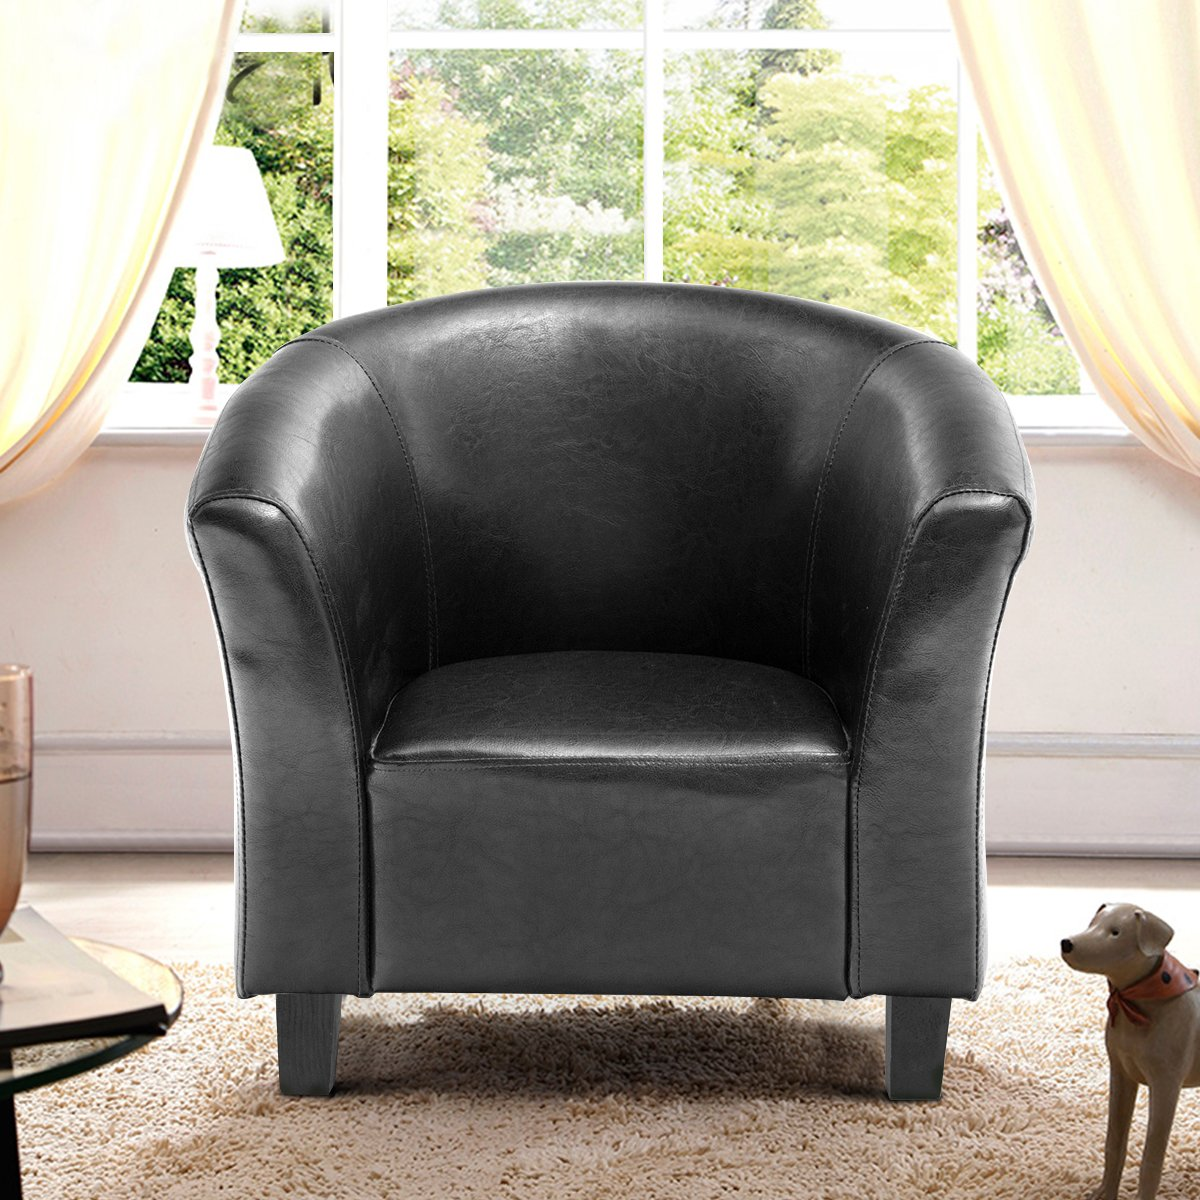 Costzon Kids Sofa Tub Chair Couch Children Living Room Toddler Furniture (PU Leather, Black) by Costzon (Image #4)